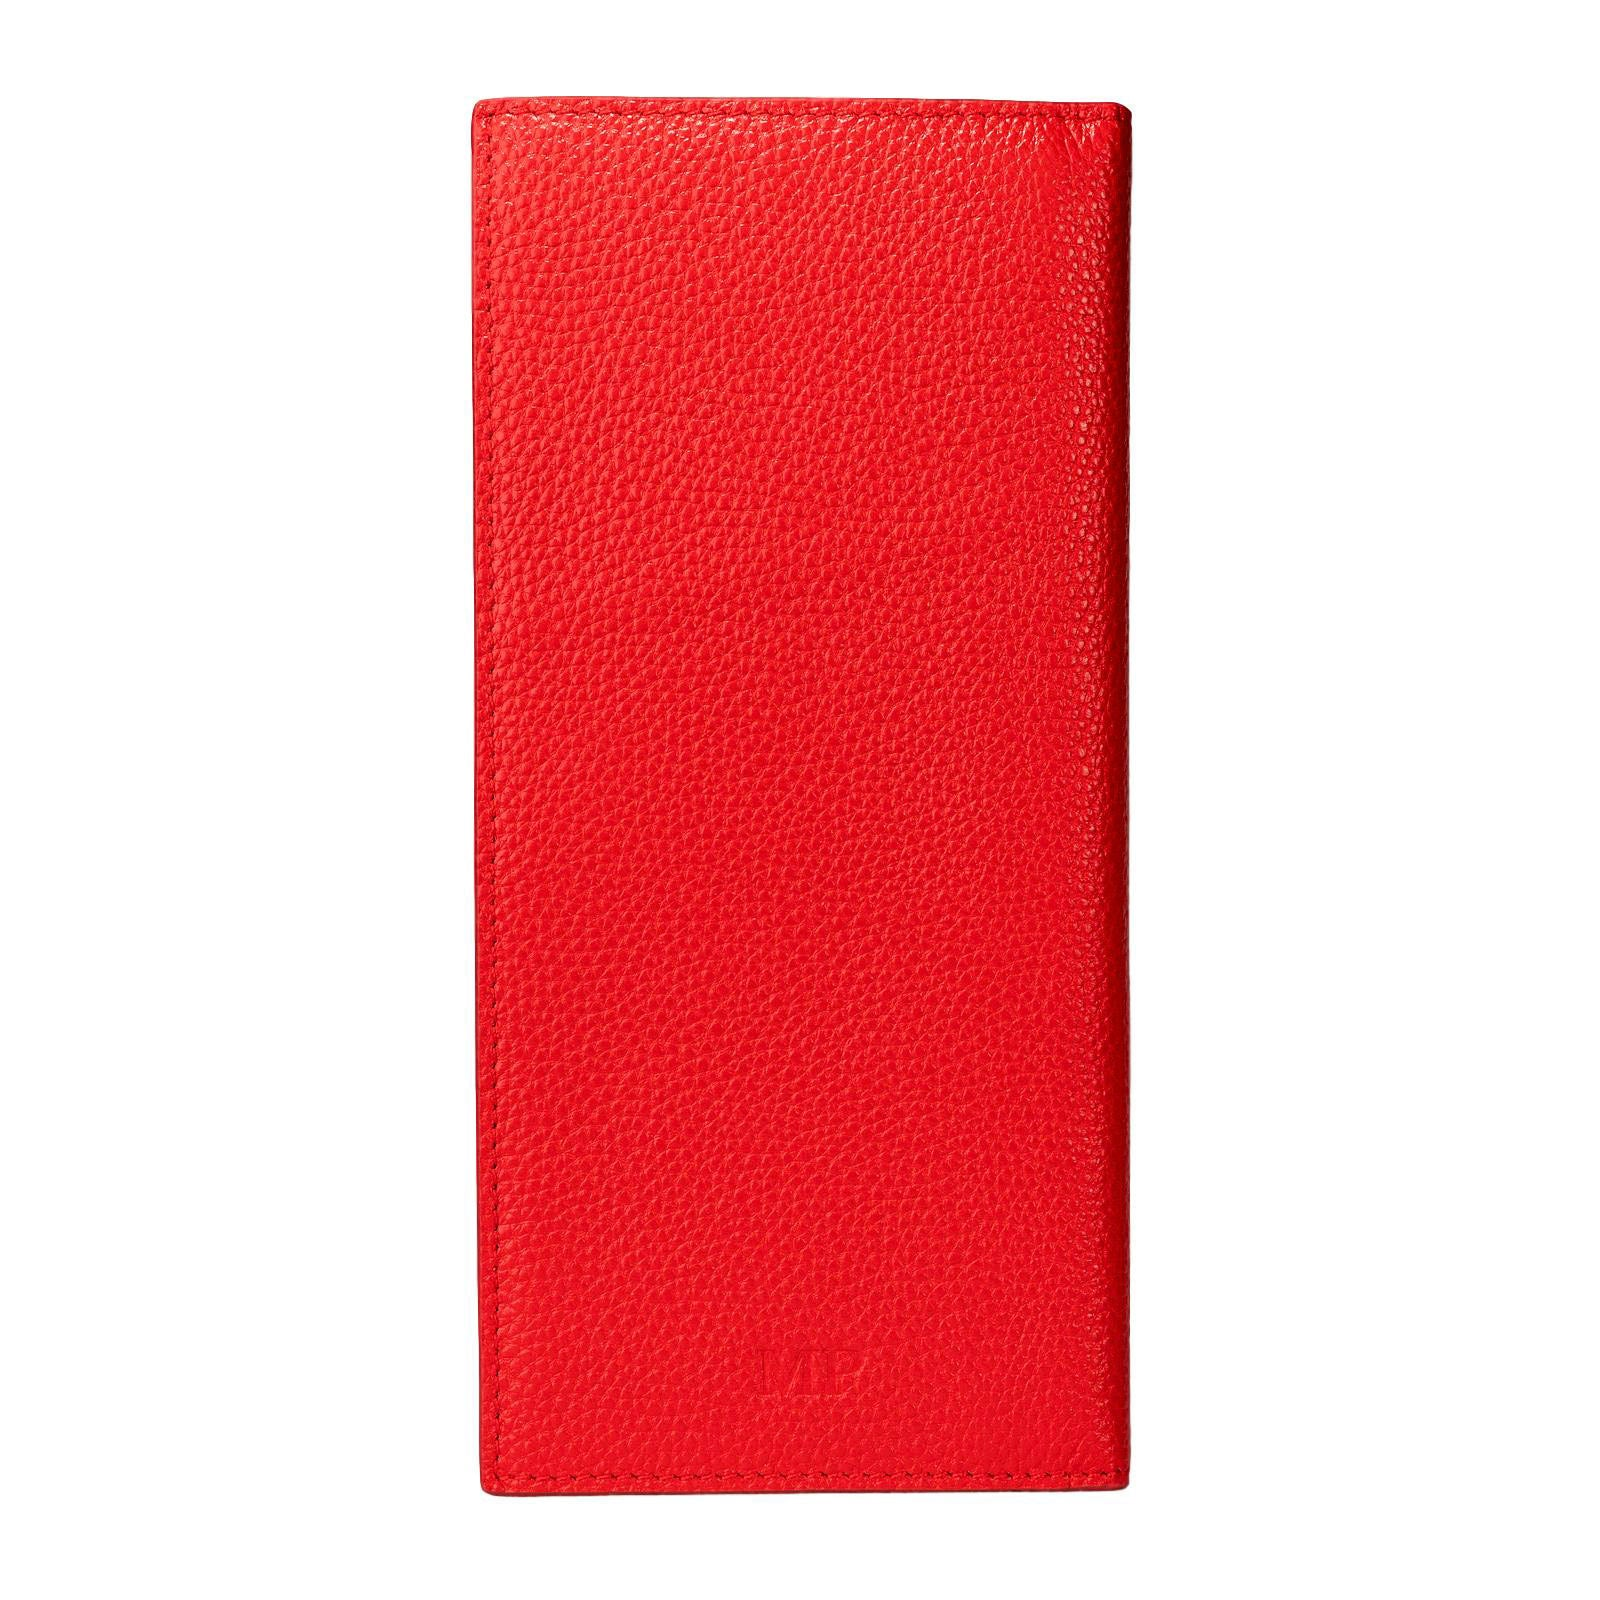 Mon Purse Pebbled Travel Wallet in Red